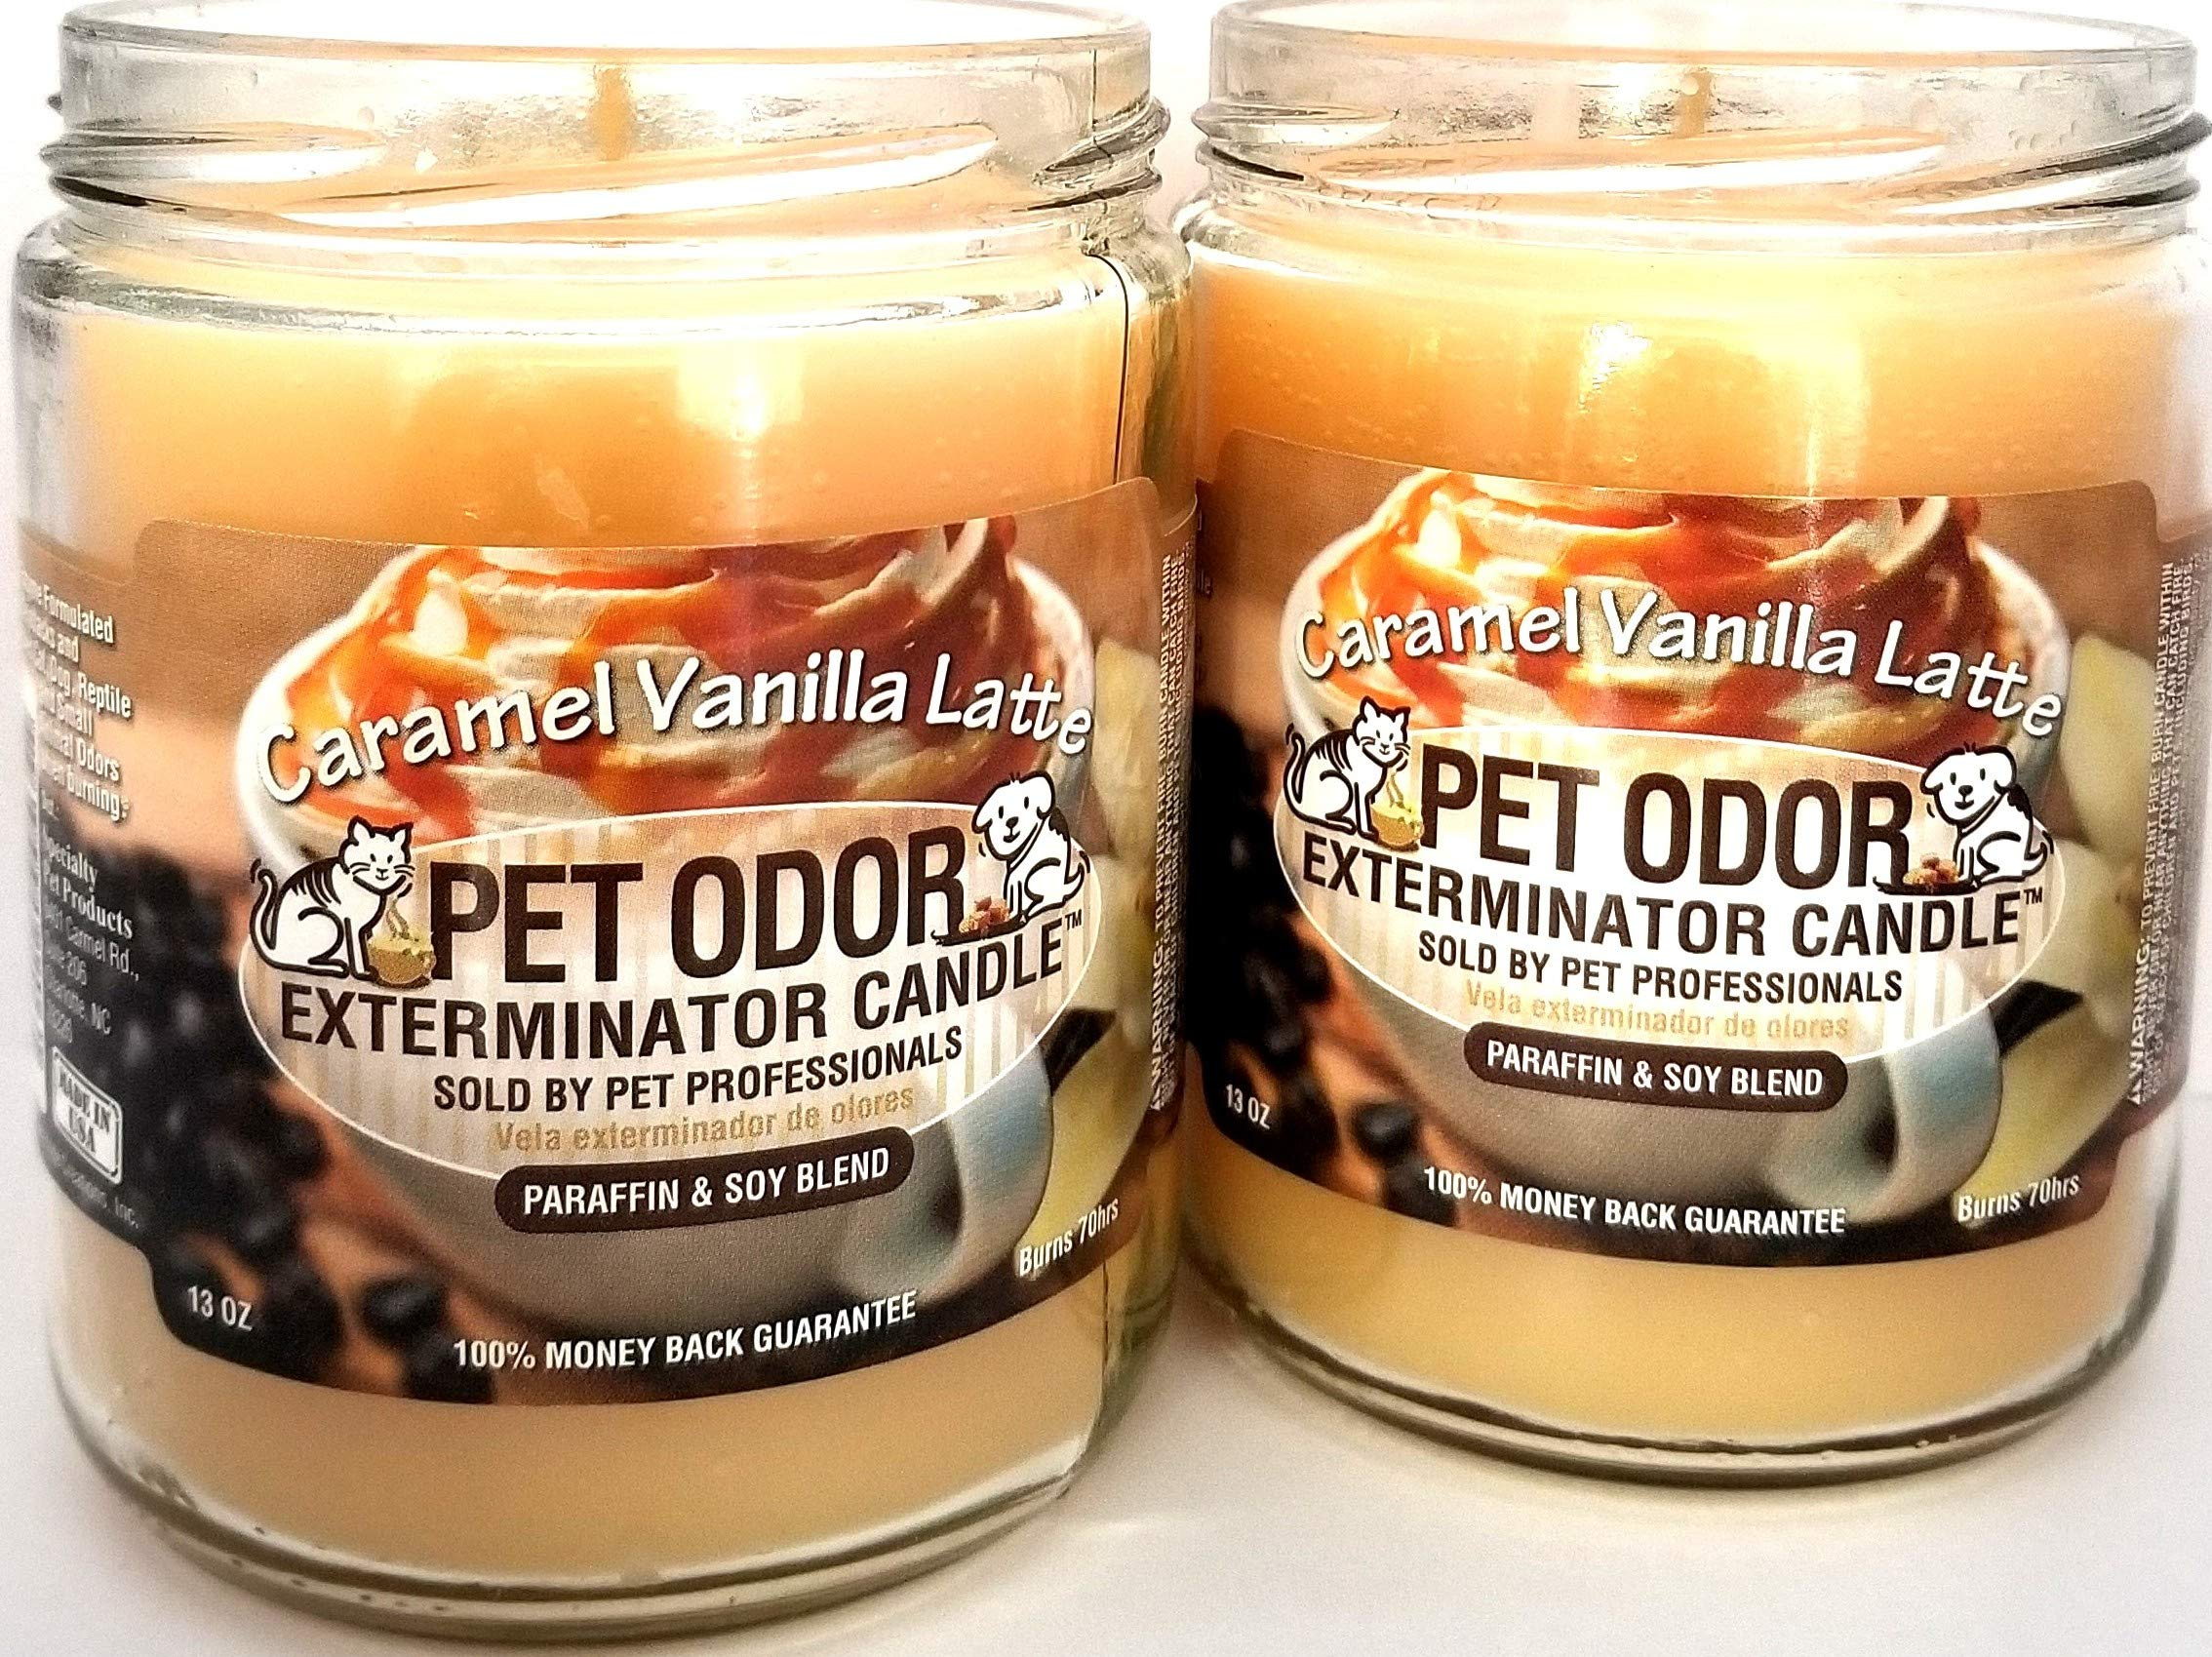 Specialty Pet Products Pet Odor Exterminator Candle, Caramel Vanilla Latte - Pack of 2